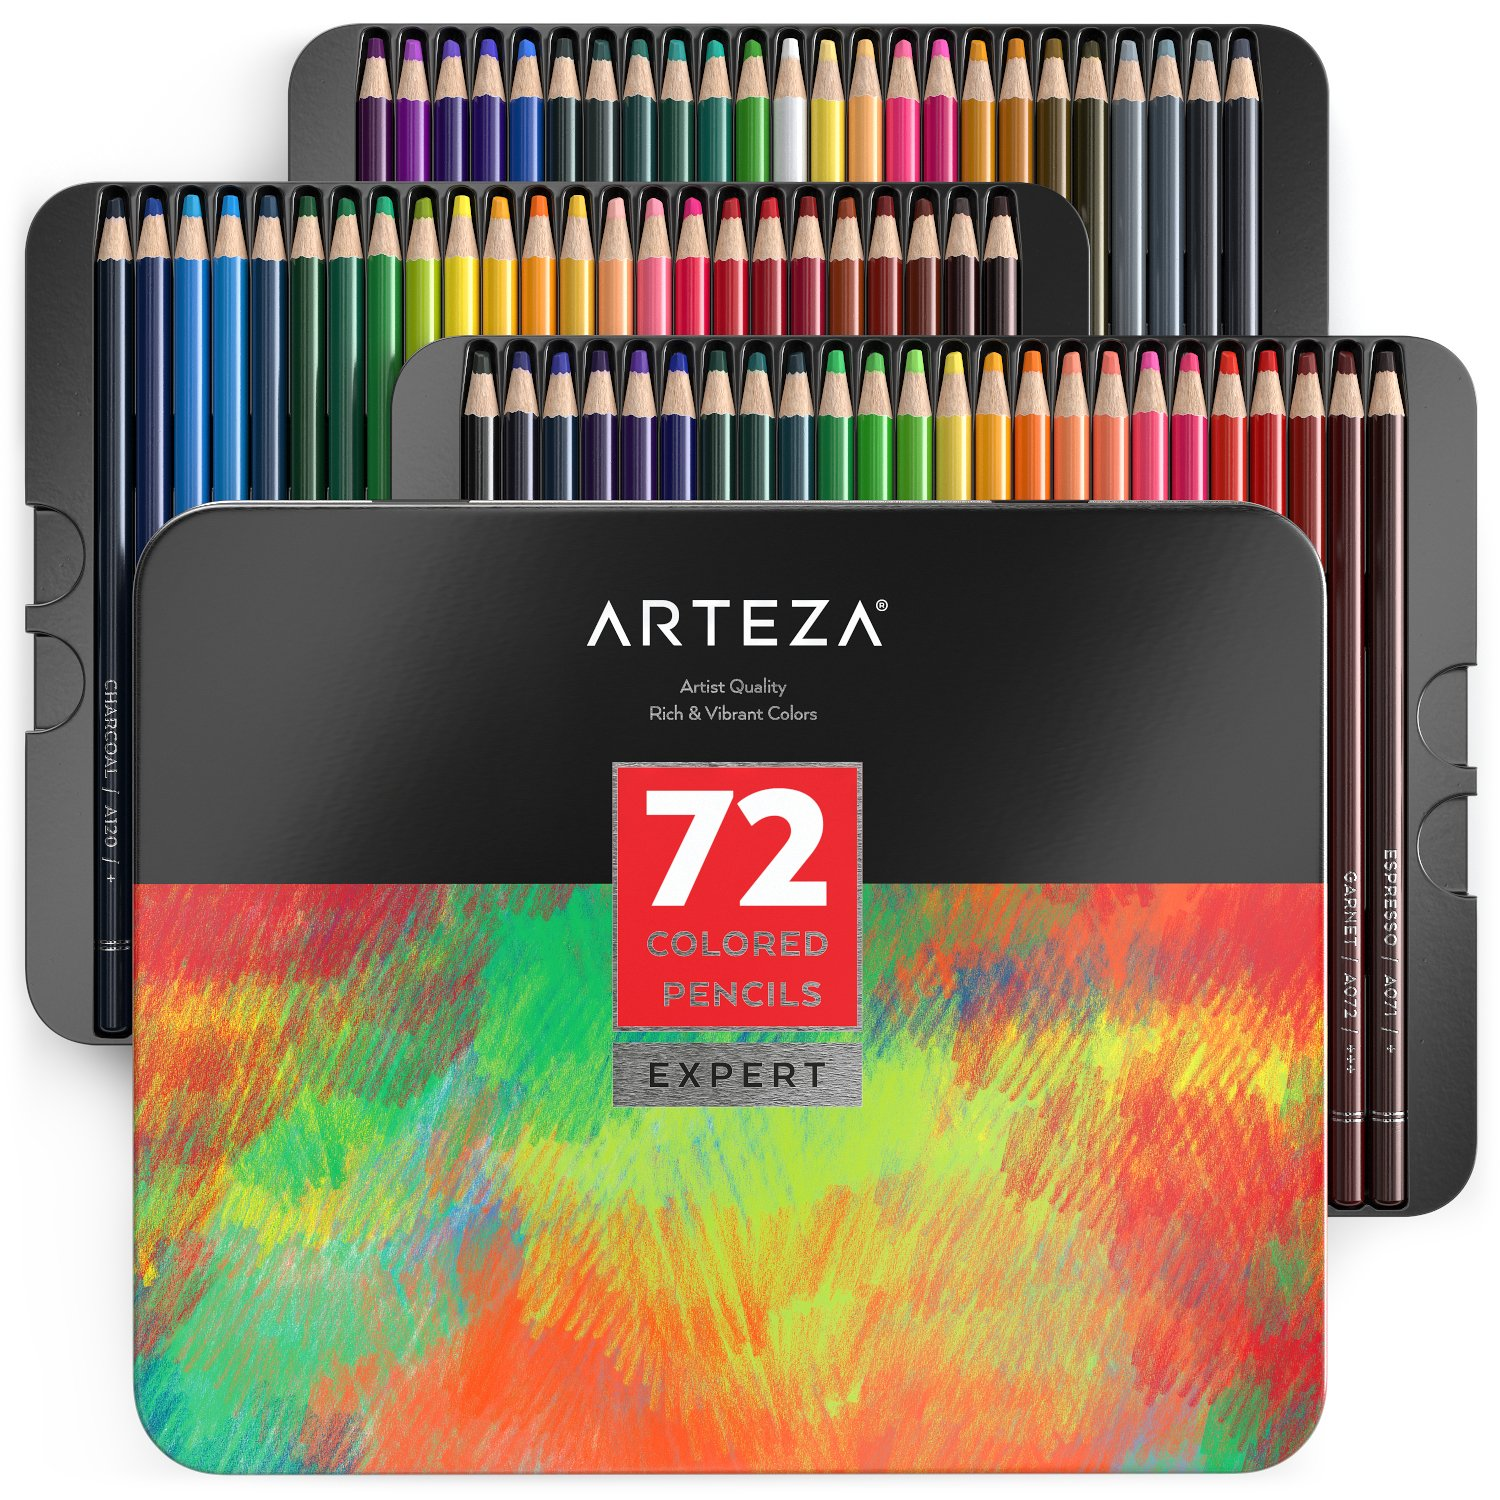 ARTEZA Colored Pencils, Professional Set of 72 Colors, Soft Wax-Based Cores, Ideal for Drawing Art, Sketching, Shading & Coloring, Vibrant Artist Pencils for Beginners & Pro Artists in Tin Box by ARTEZA